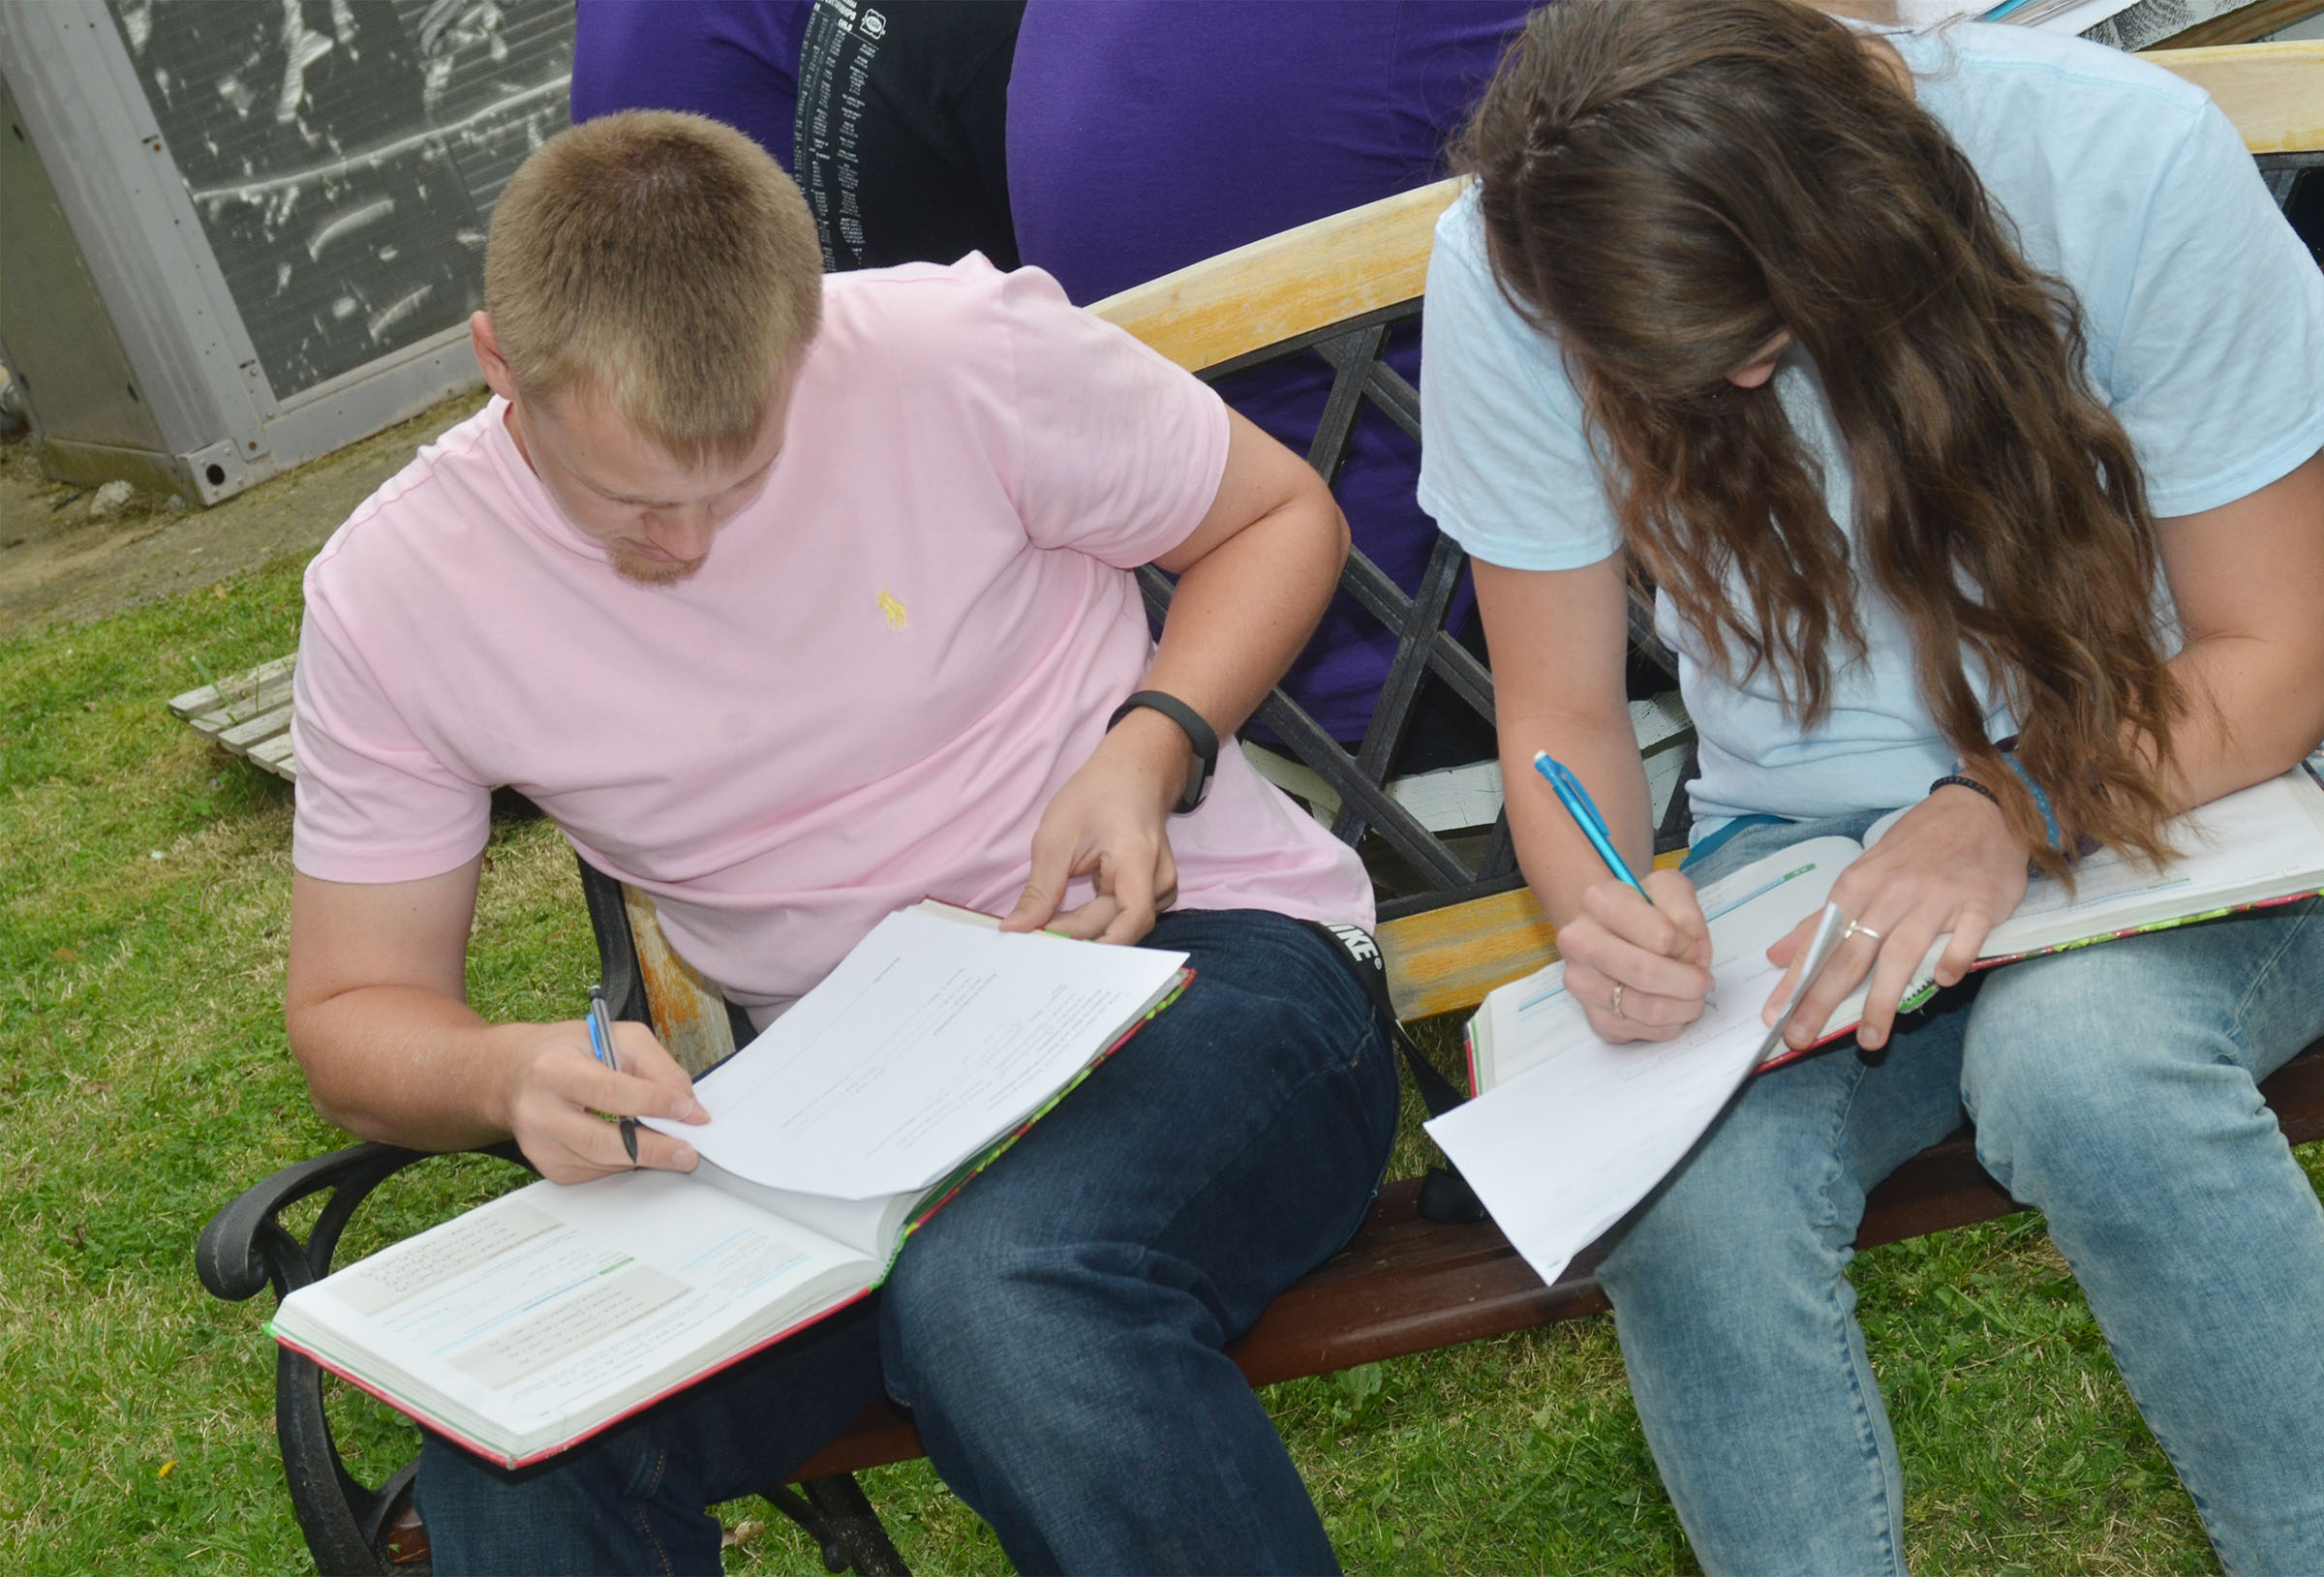 CHS junior Wyatt Houk, at left, and senior Caylie Blair work on their homework while having class outside.